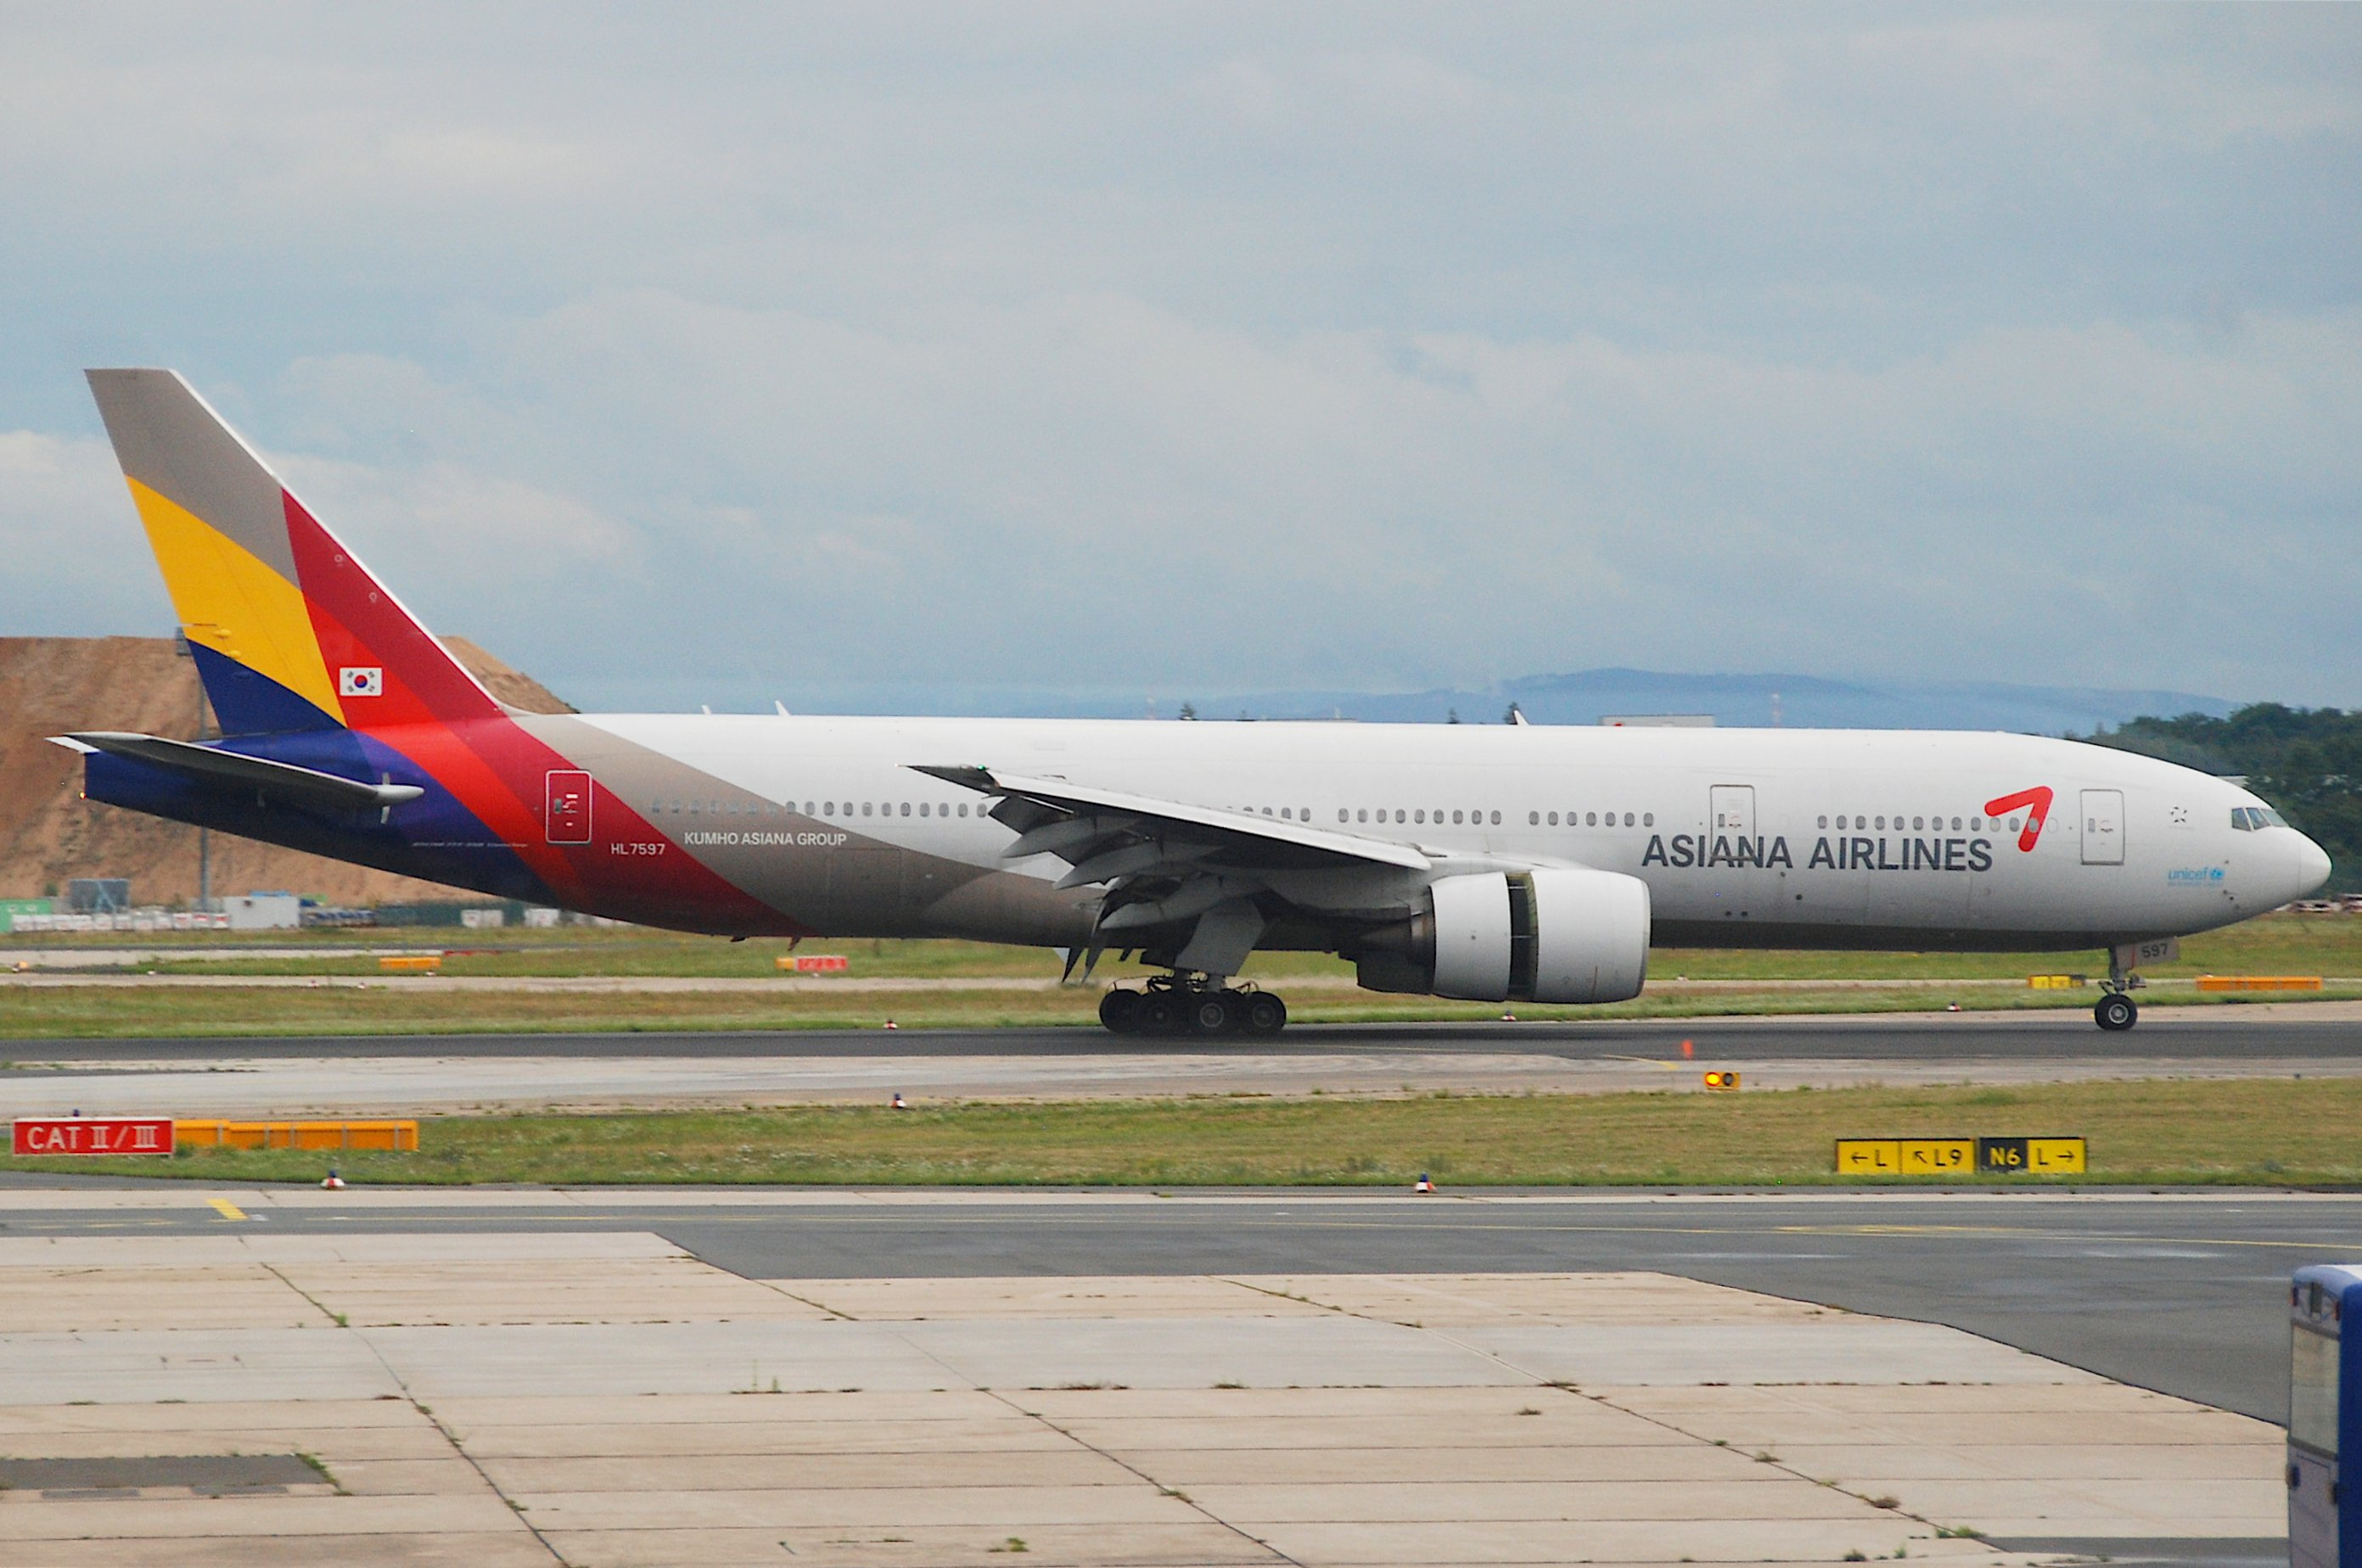 File:Asiana Airlines Boeing 777-200ER; HL7597@FRA;17.07 ...